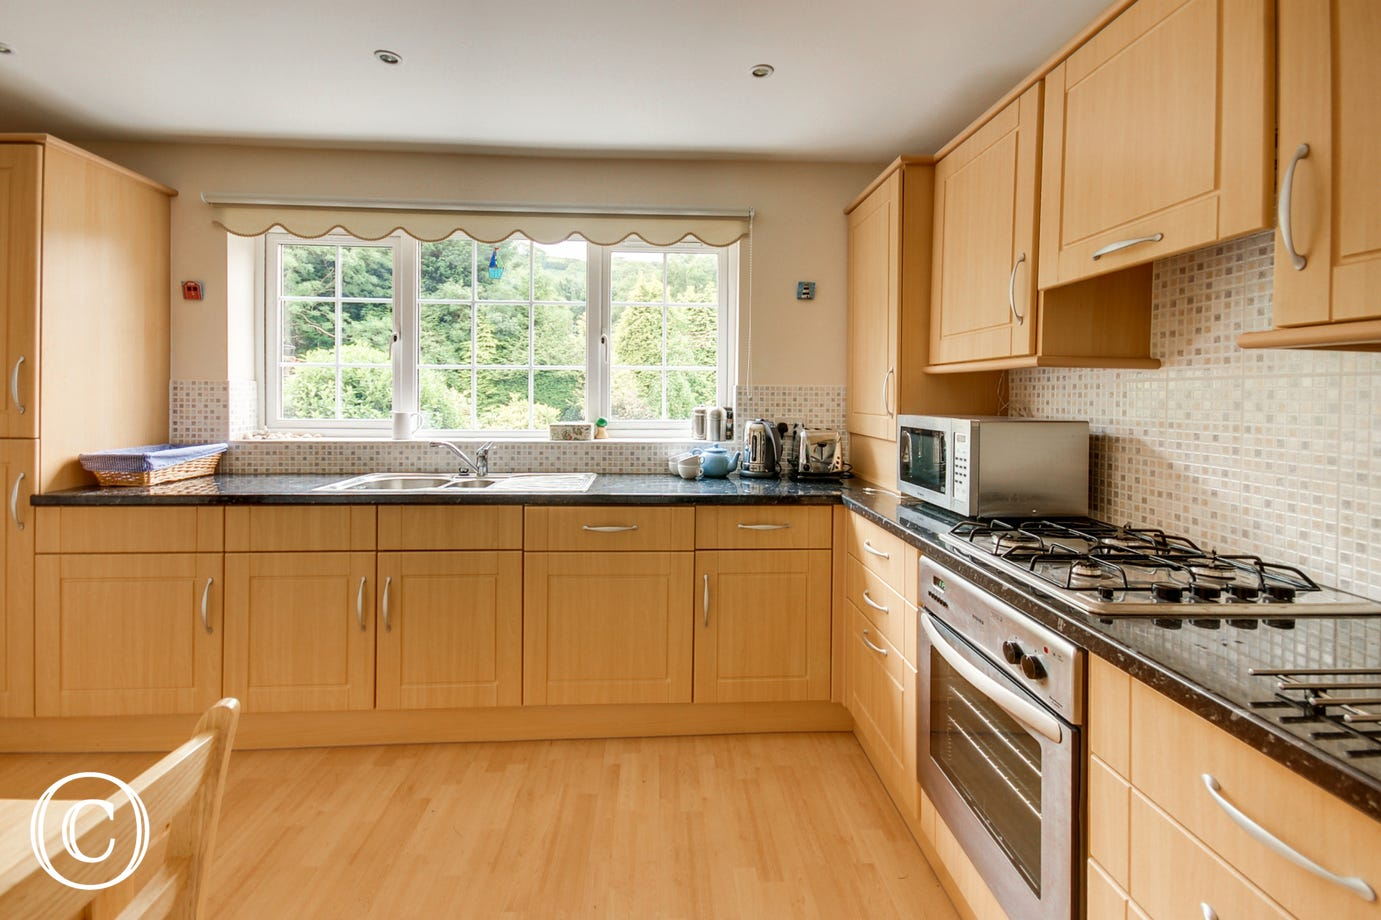 The well equipped kitchen is very spacious with plenty of cupboard space for all your provisions